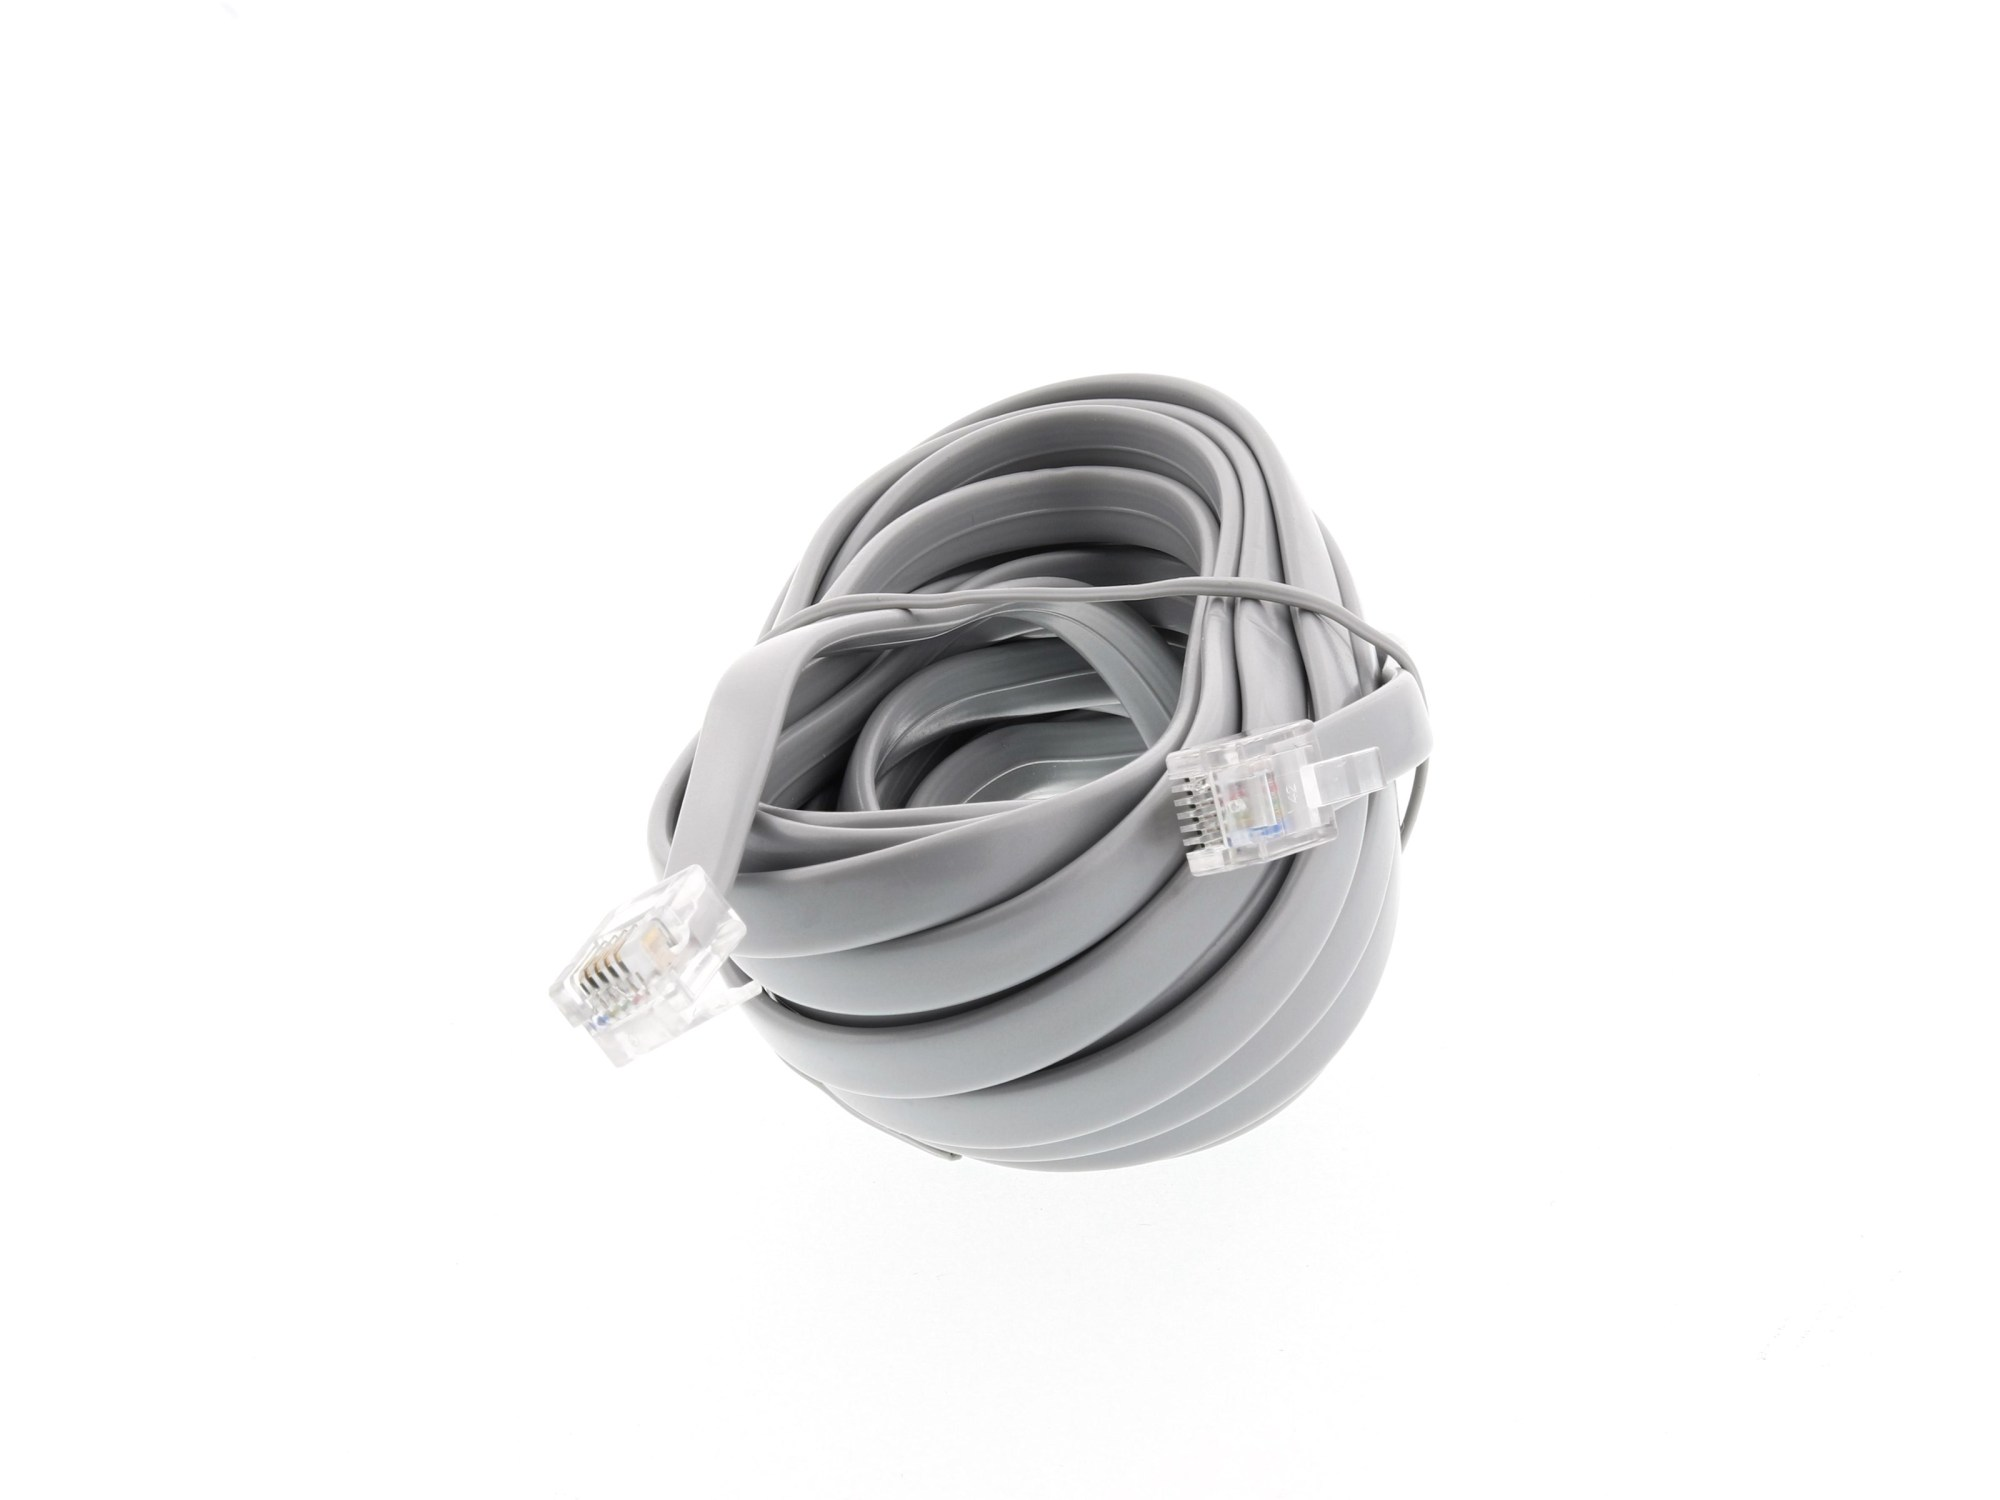 hight resolution of  picture of rj12 6 conductor straight wired modular telephone cable 15 ft